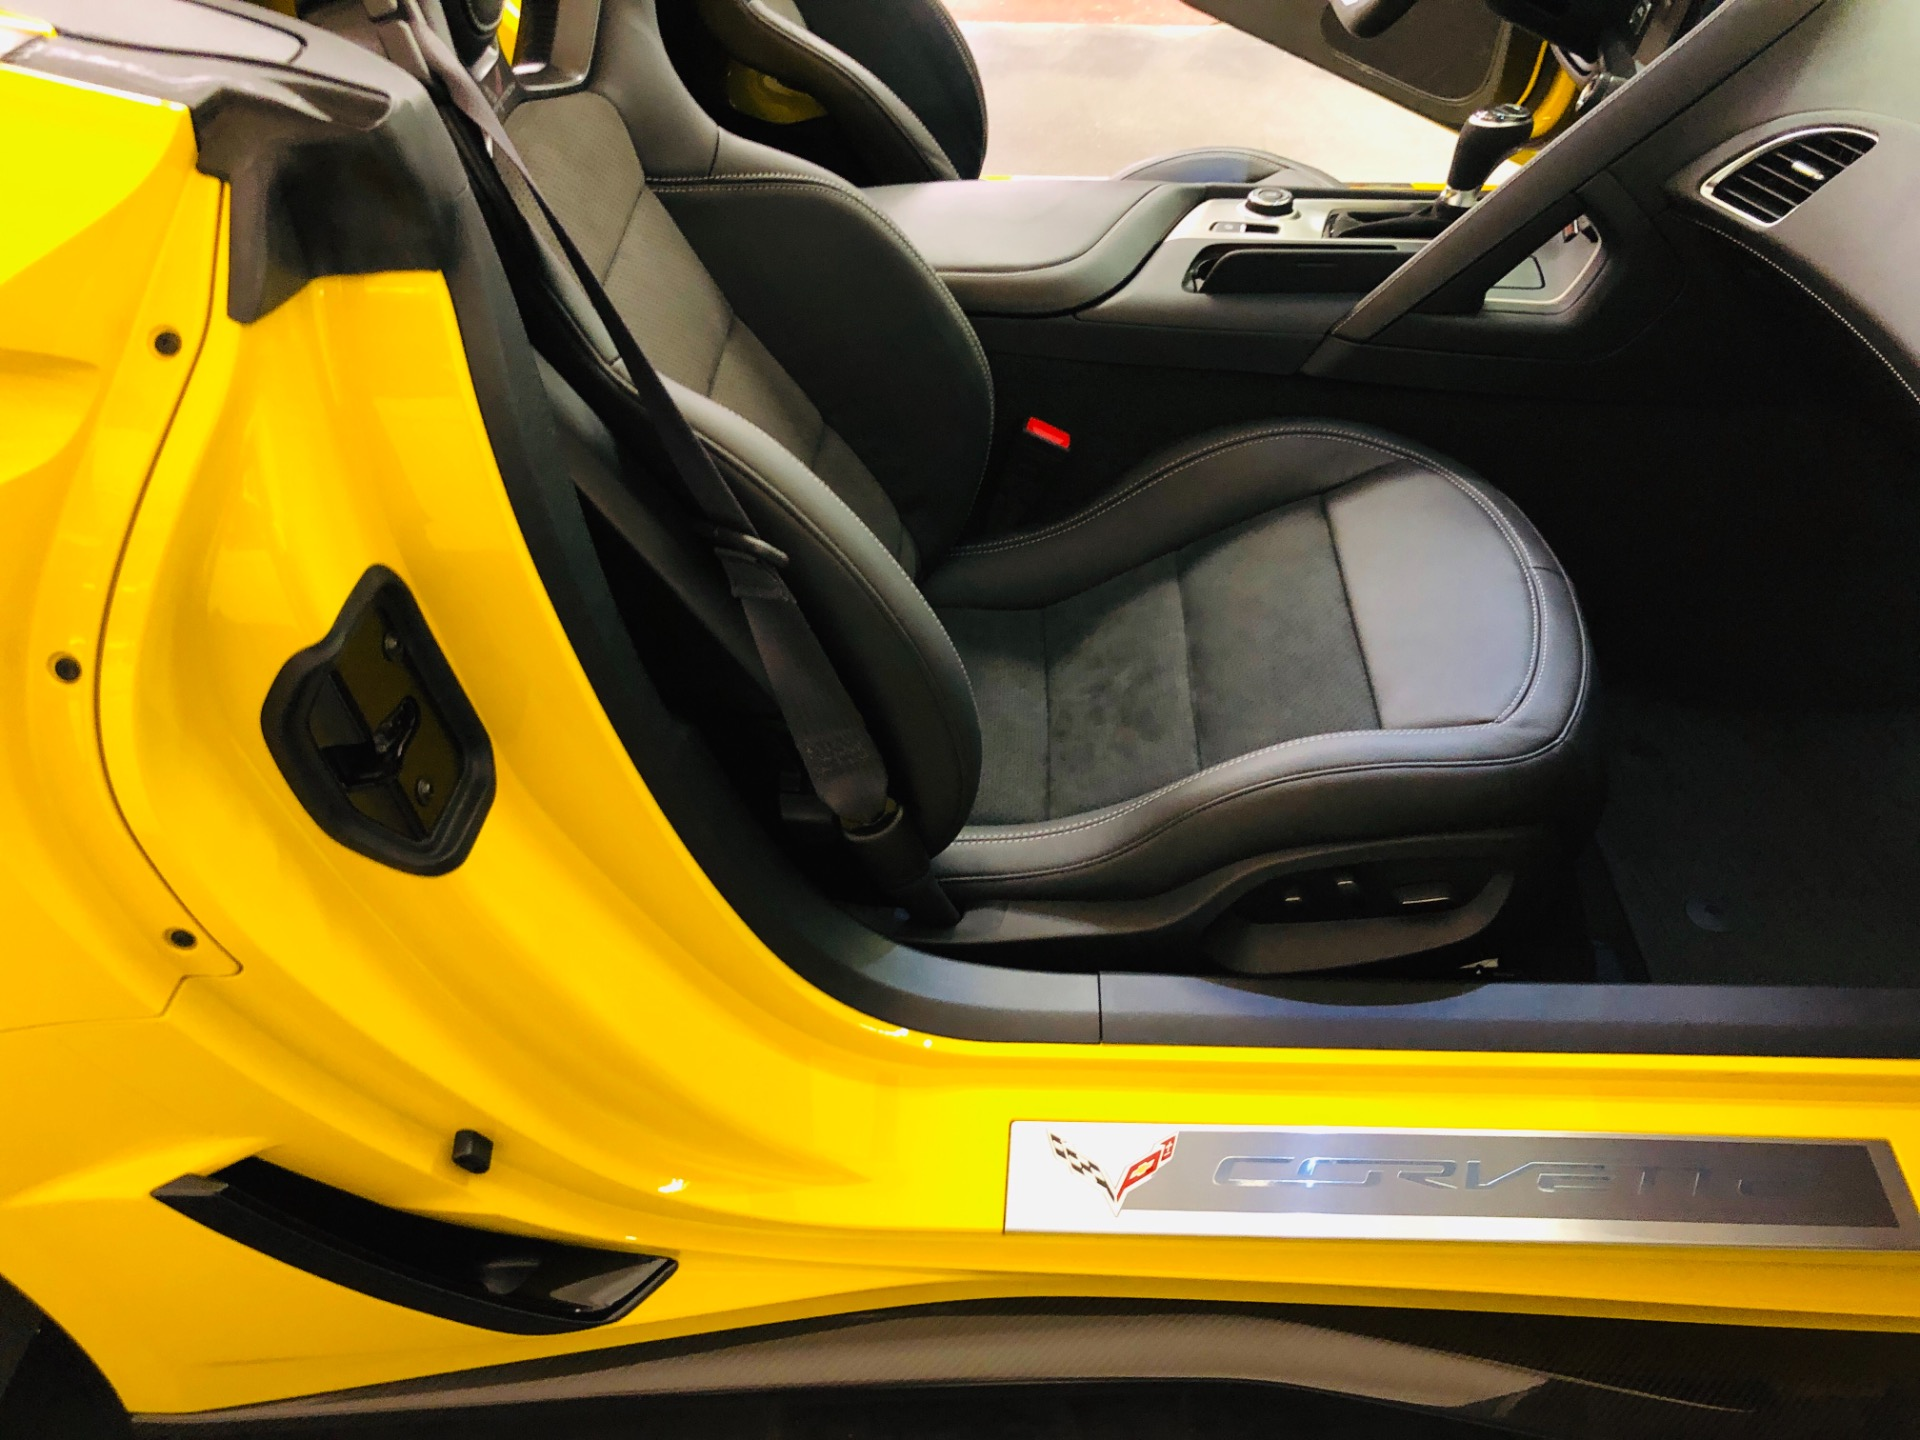 Used 2015 Chevrolet Corvette -Z06 SUPERCHARGED - PERFORMANCE TUNED OVER 850HP - SEE VIDEO | Mundelein, IL